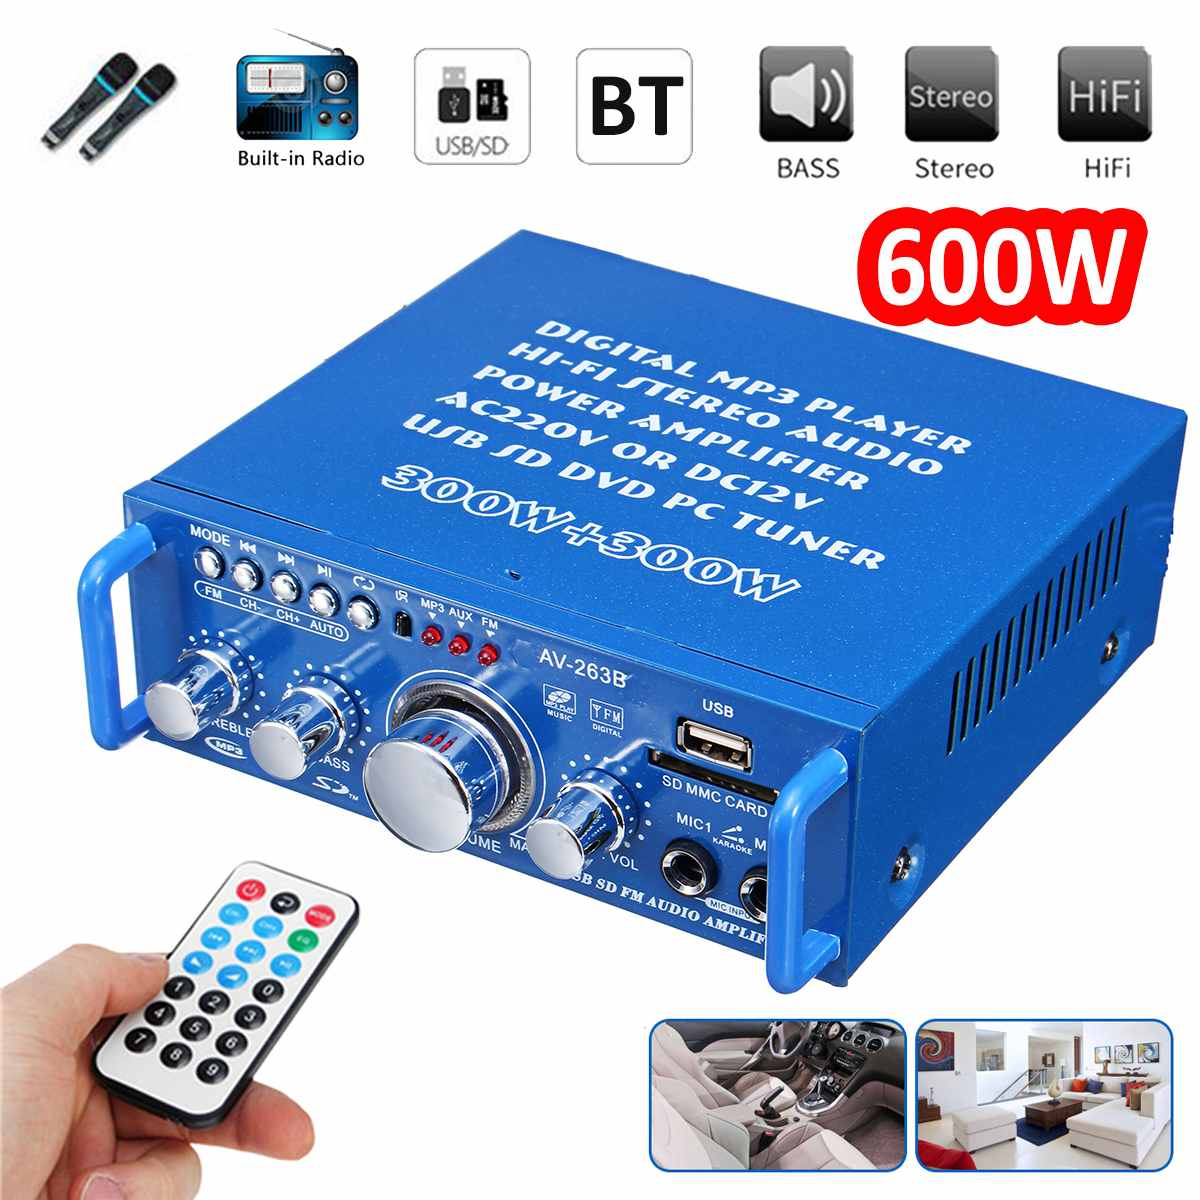 600W HIFI 12V/220V Car Bluetooth Audio Amplifier Stereo Power Music Player FM Radio Home Theater Amplifiers With Remote Control